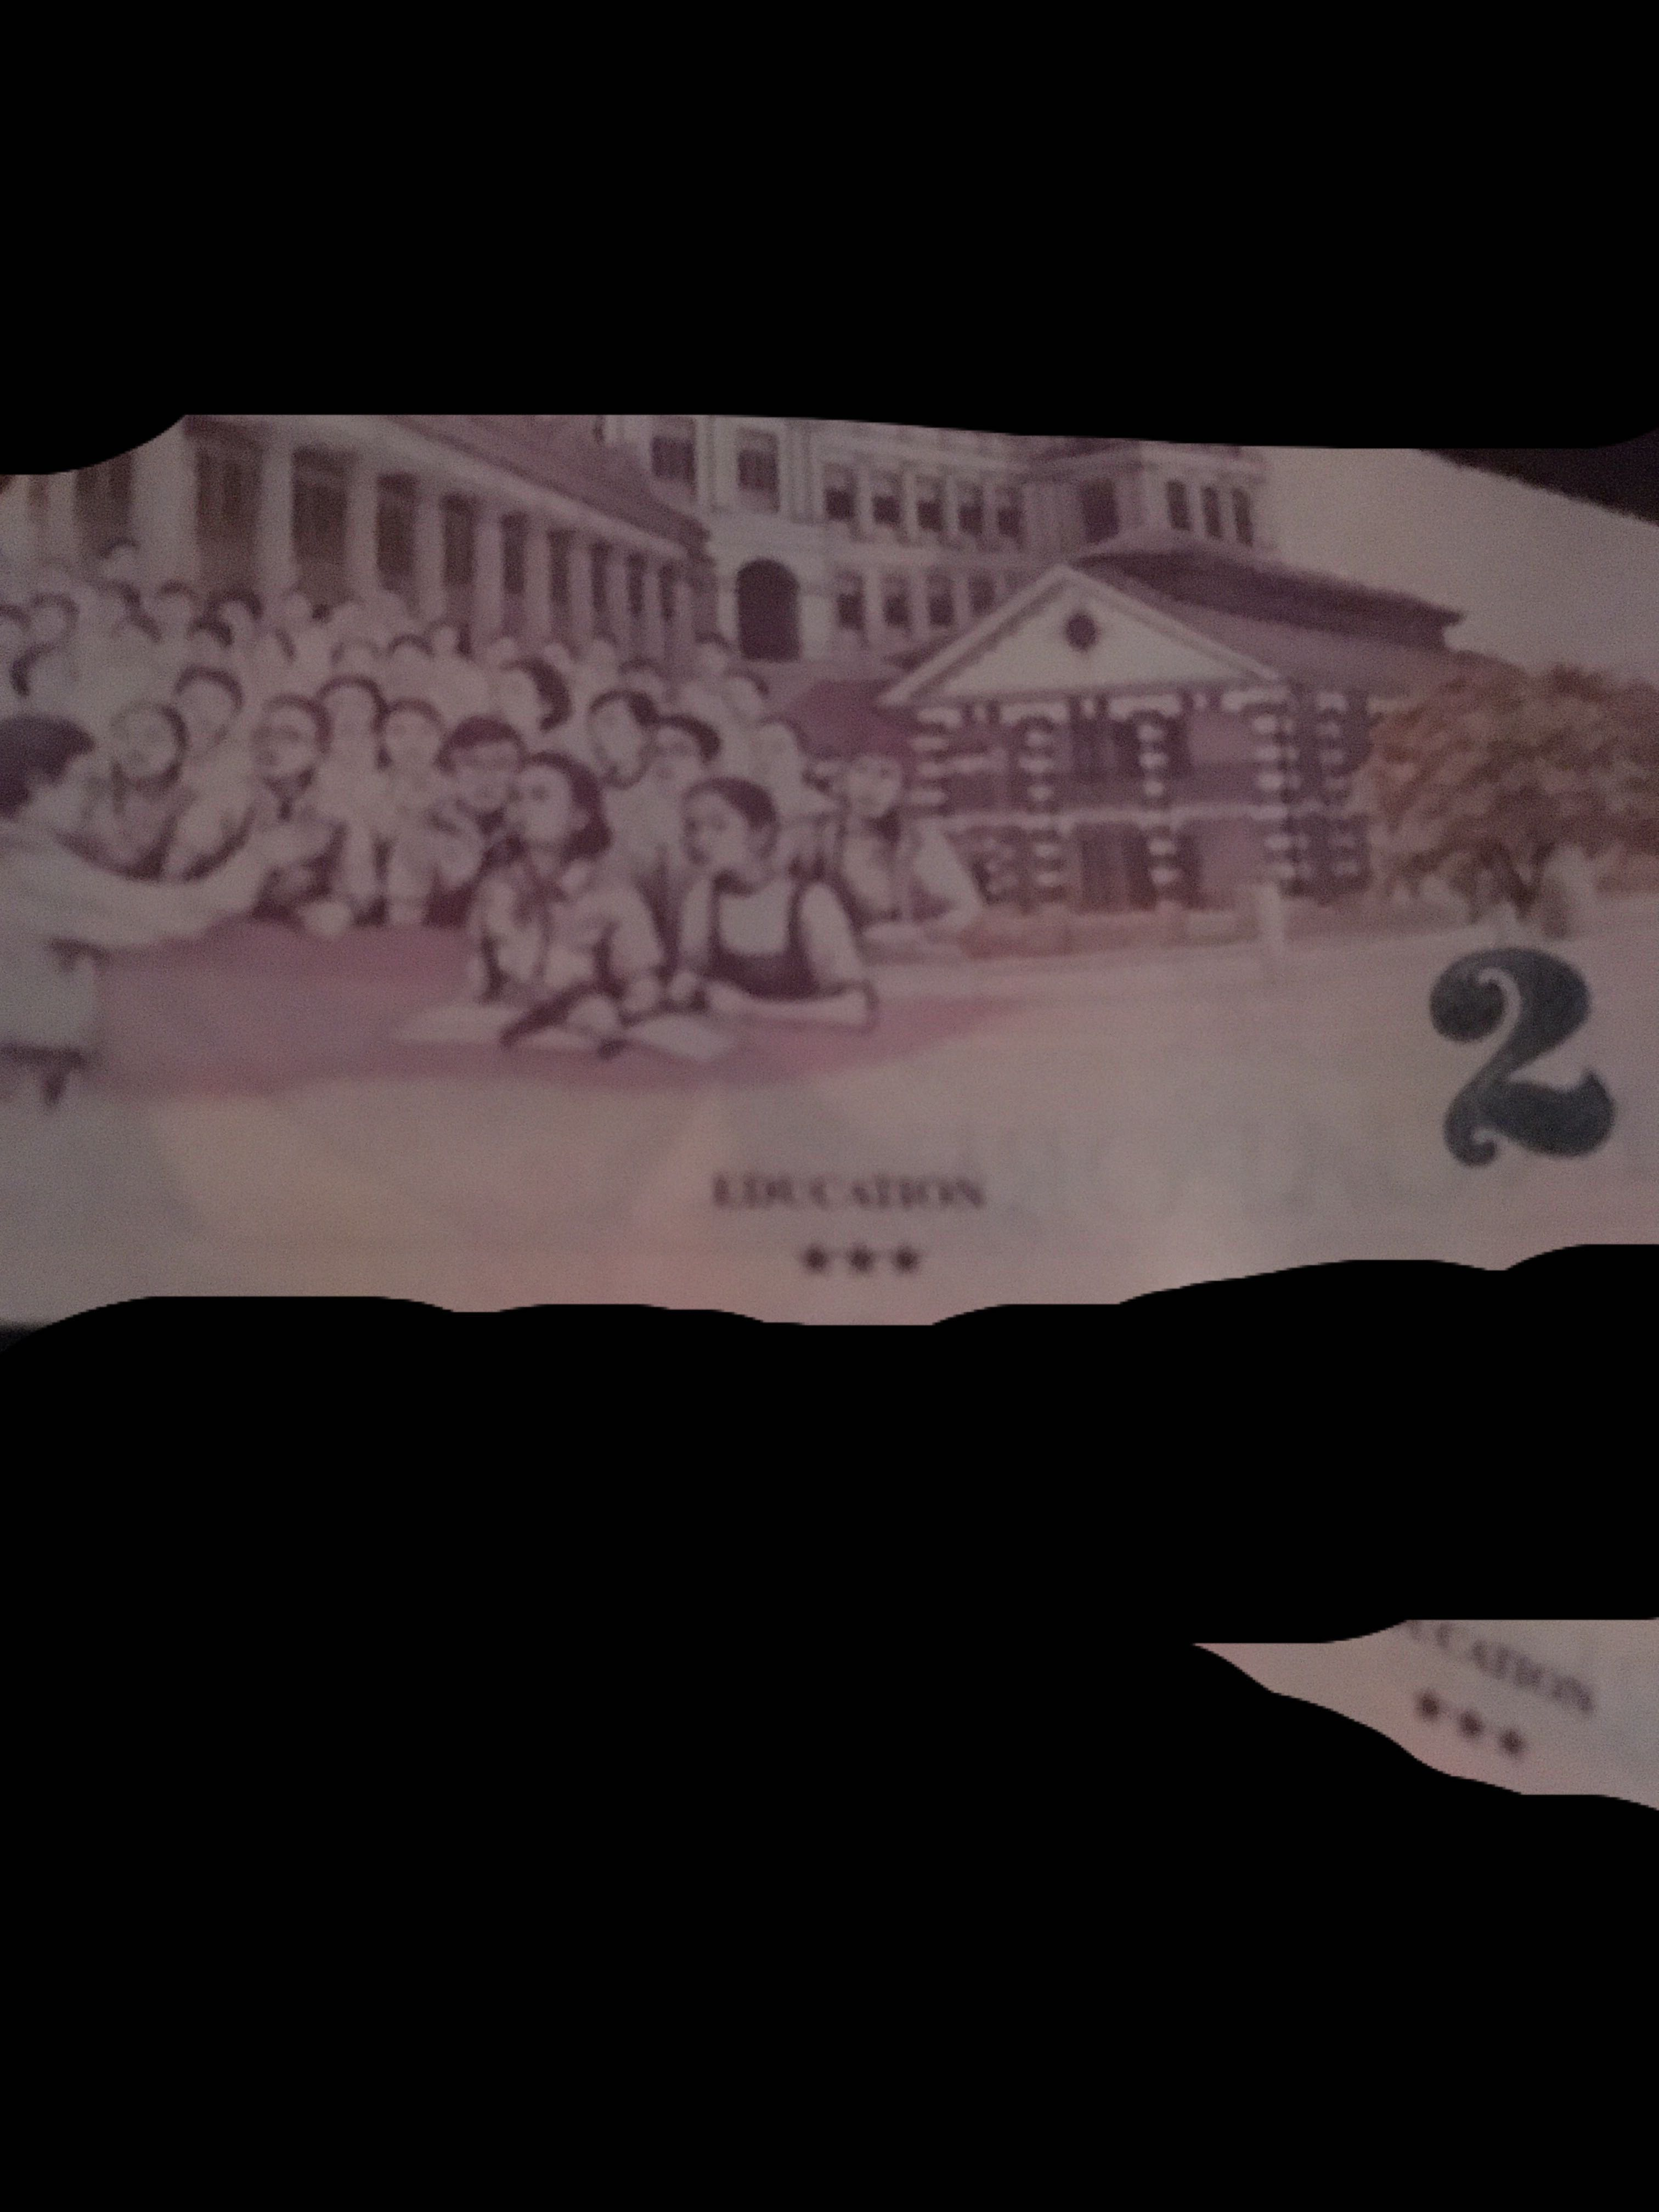 Is a $2 3 Star note rare I have quite a few after a few years